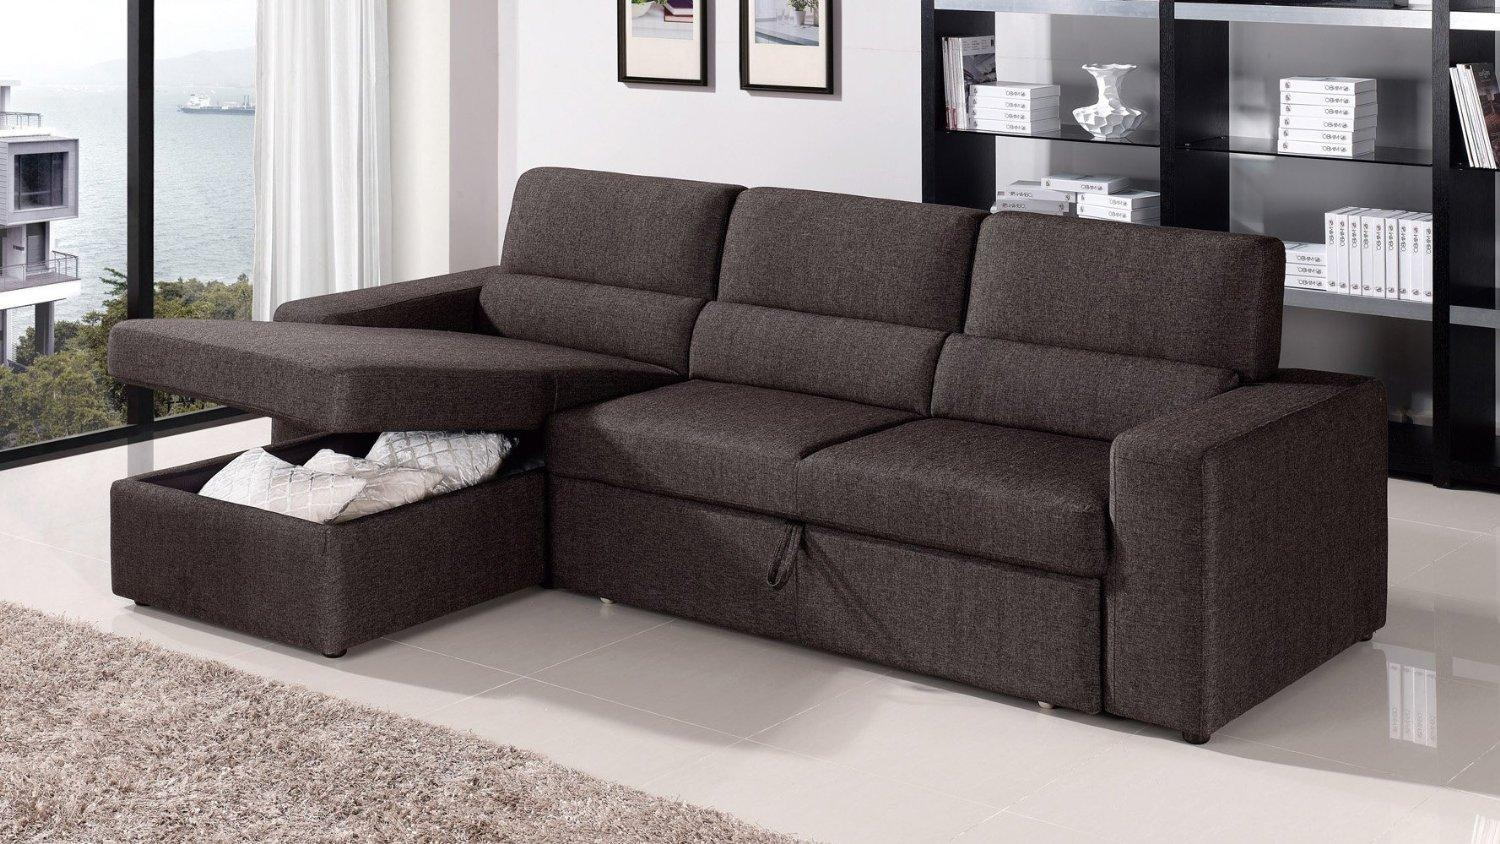 Pull Out Sofa Bed With Storage – Destroybmx Throughout Sofa Beds With Storage Chaise (Image 10 of 20)